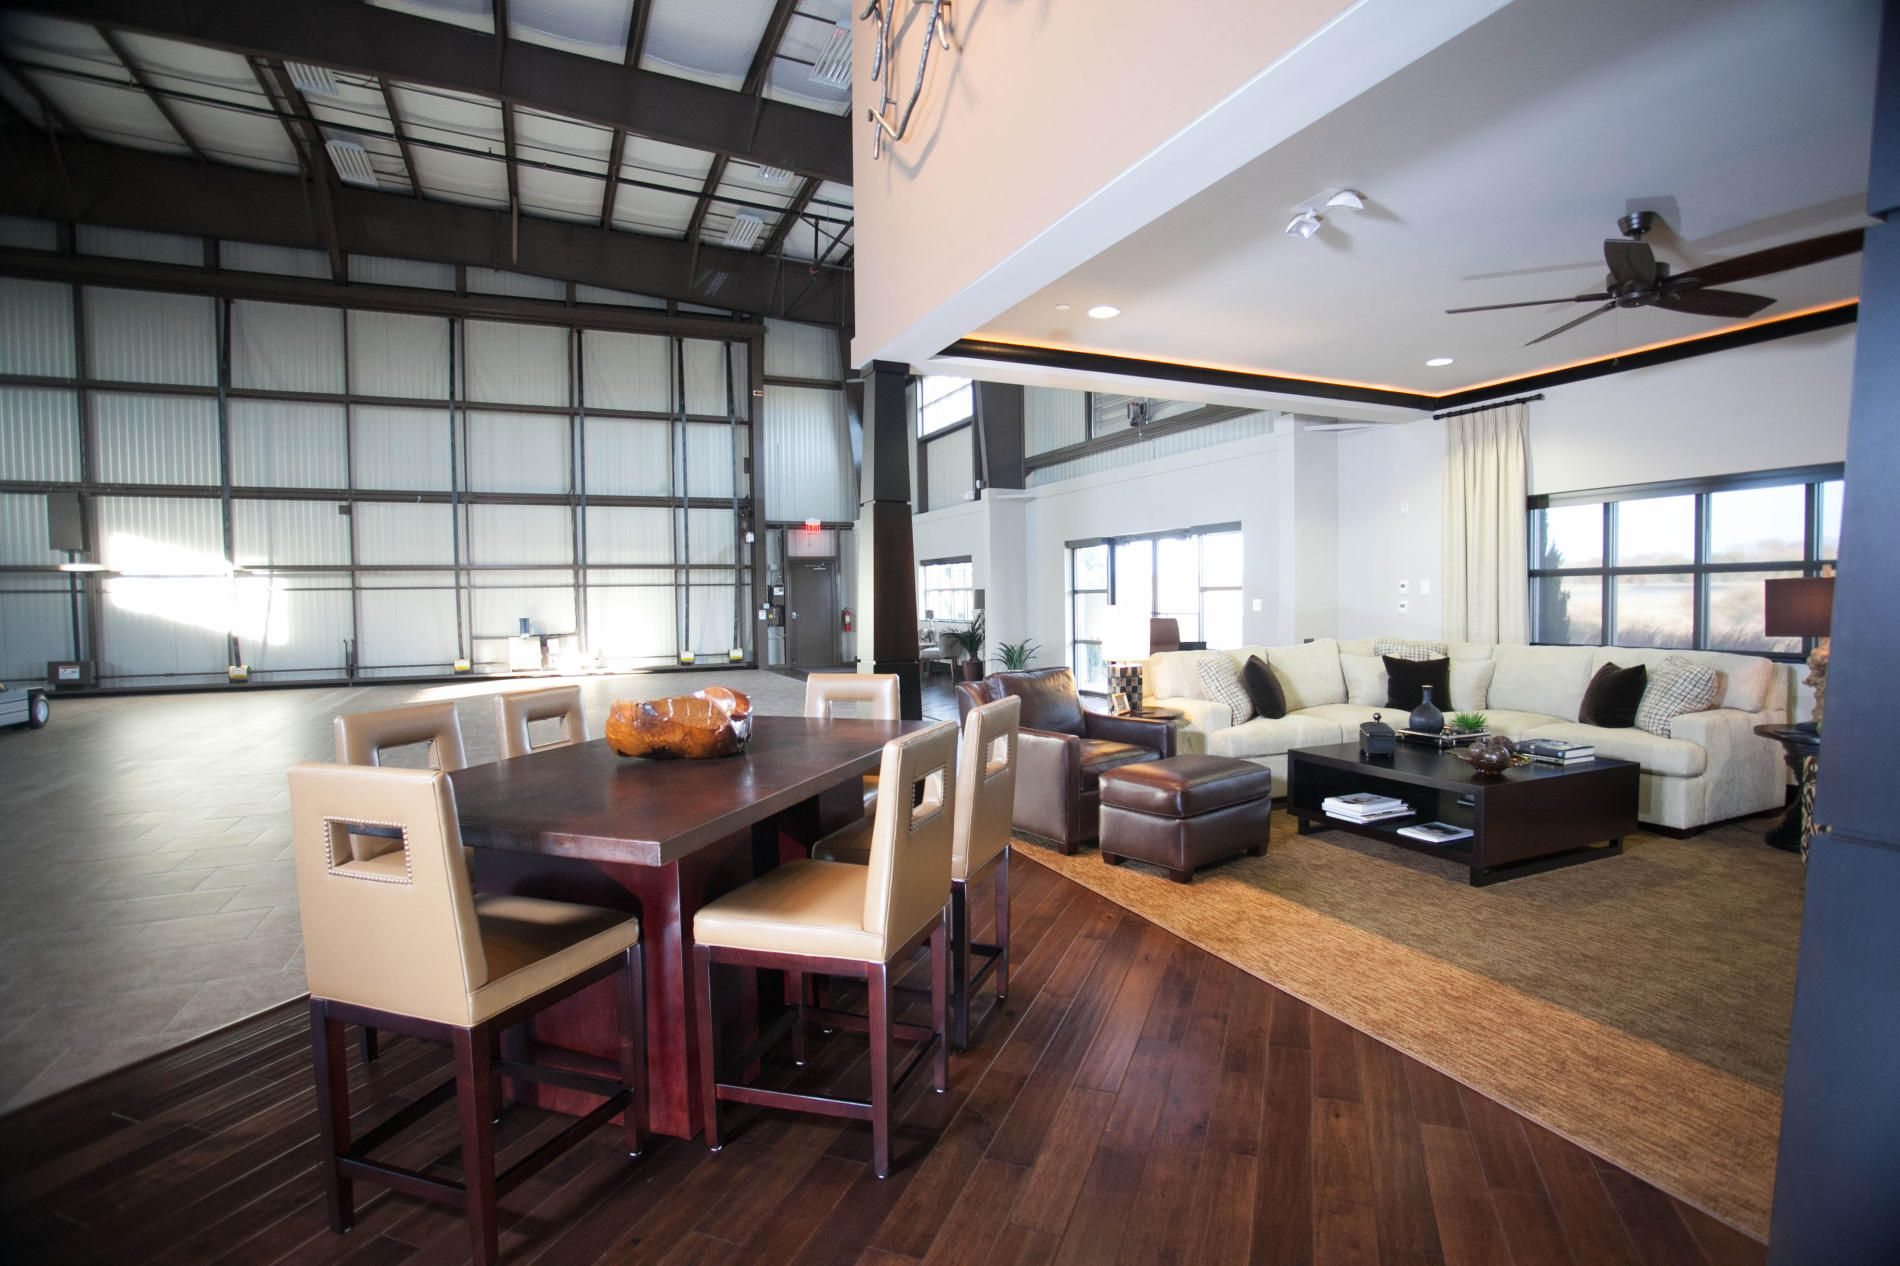 Marvelous Hangar Homes | Luxury Airplane Hangar Apartment By Upscale Urban Design In  Charlotte .